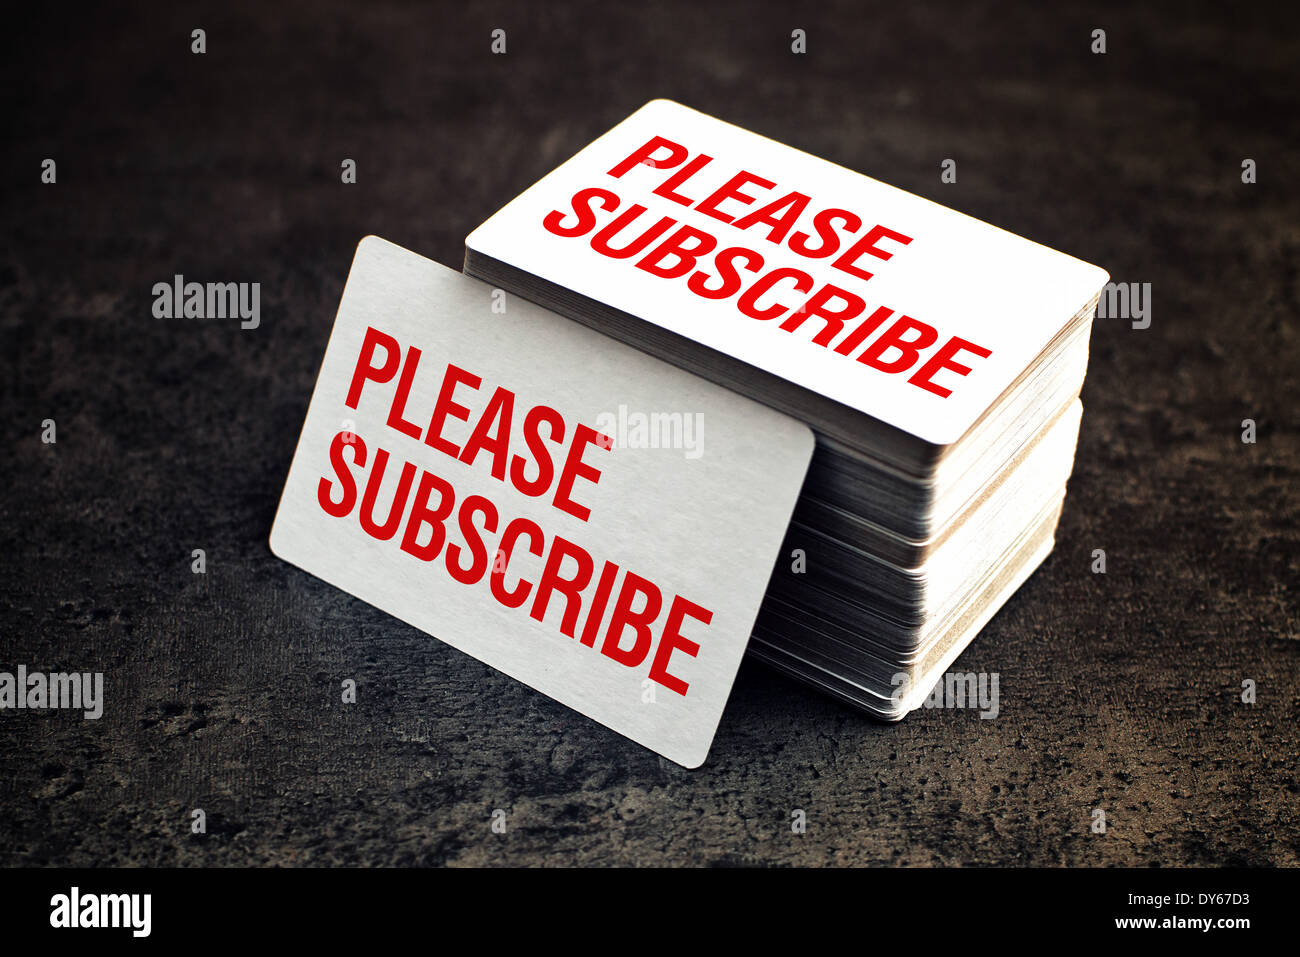 Please subscribe business cards with rounded corners stack of blank please subscribe business cards with rounded corners stack of blank horizontal business cards propped up another reheart Image collections